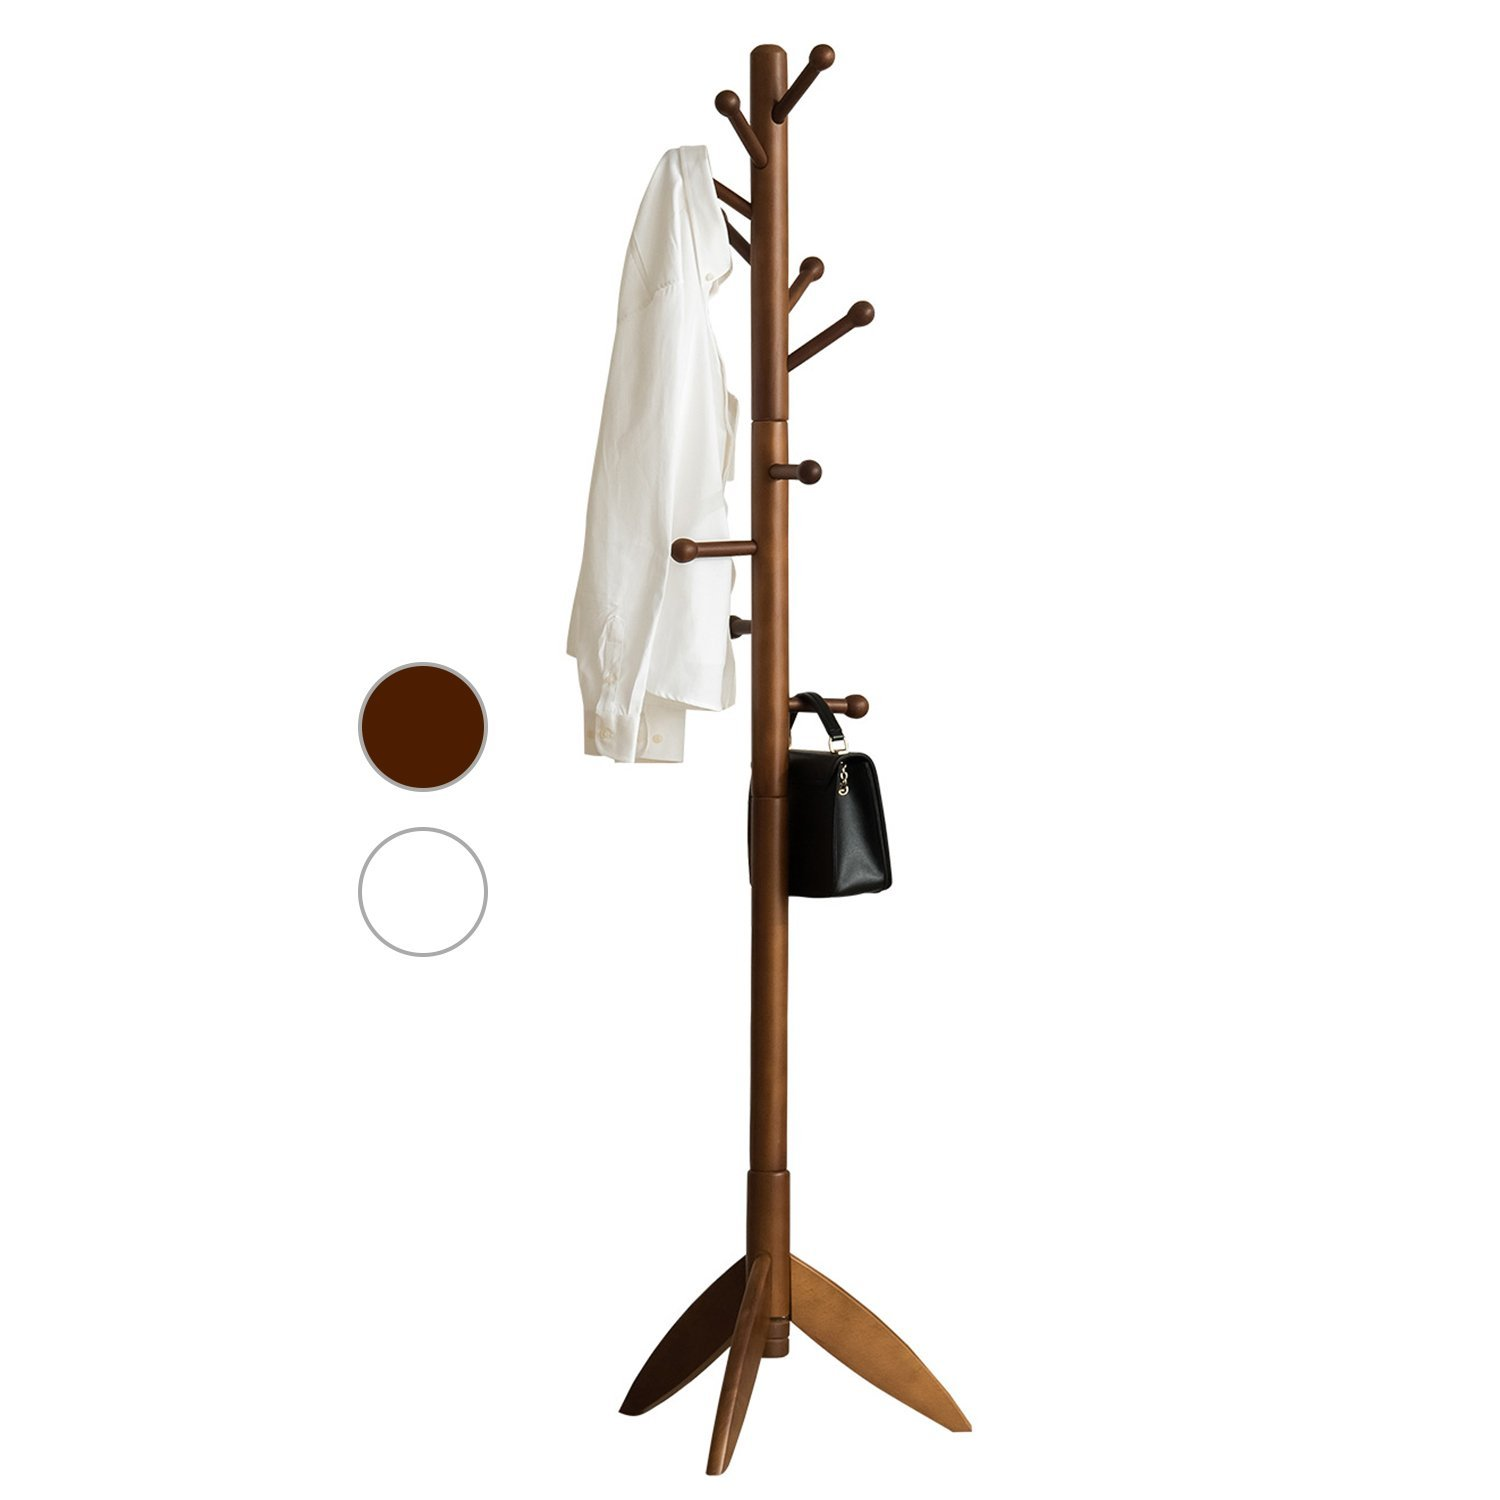 LCH Sturdy Coat Rack Solid Rubber Wood Hall Tree with Tripod Base, 11 Hooks(Coffee)